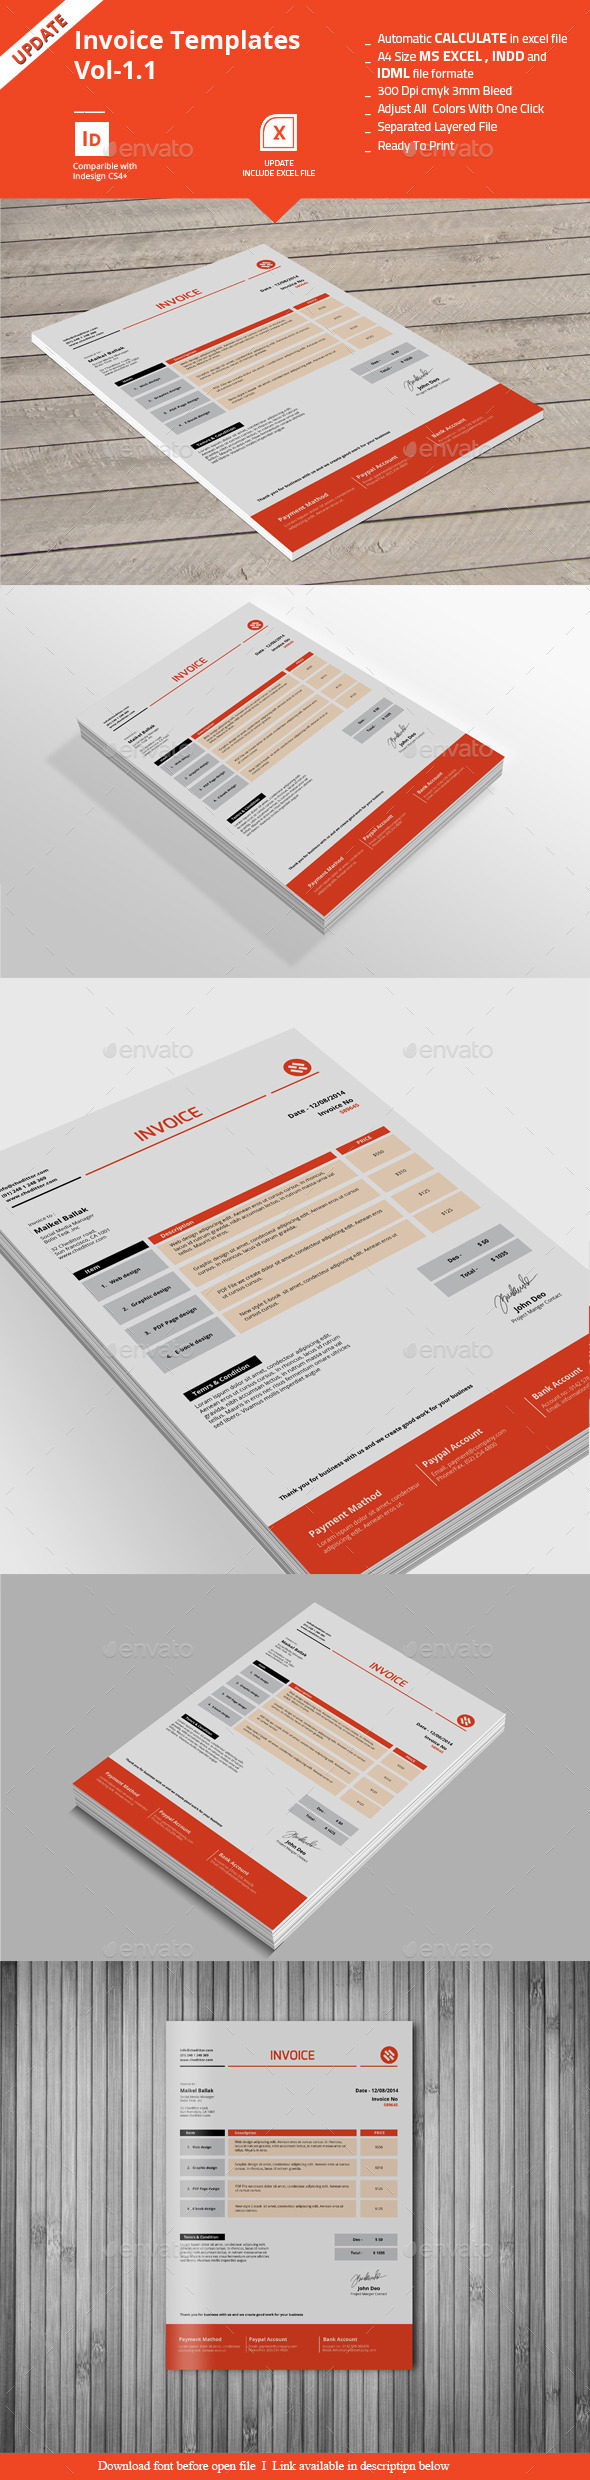 Invoice Templates Vol-1.1 - Proposals & Invoices Stationery